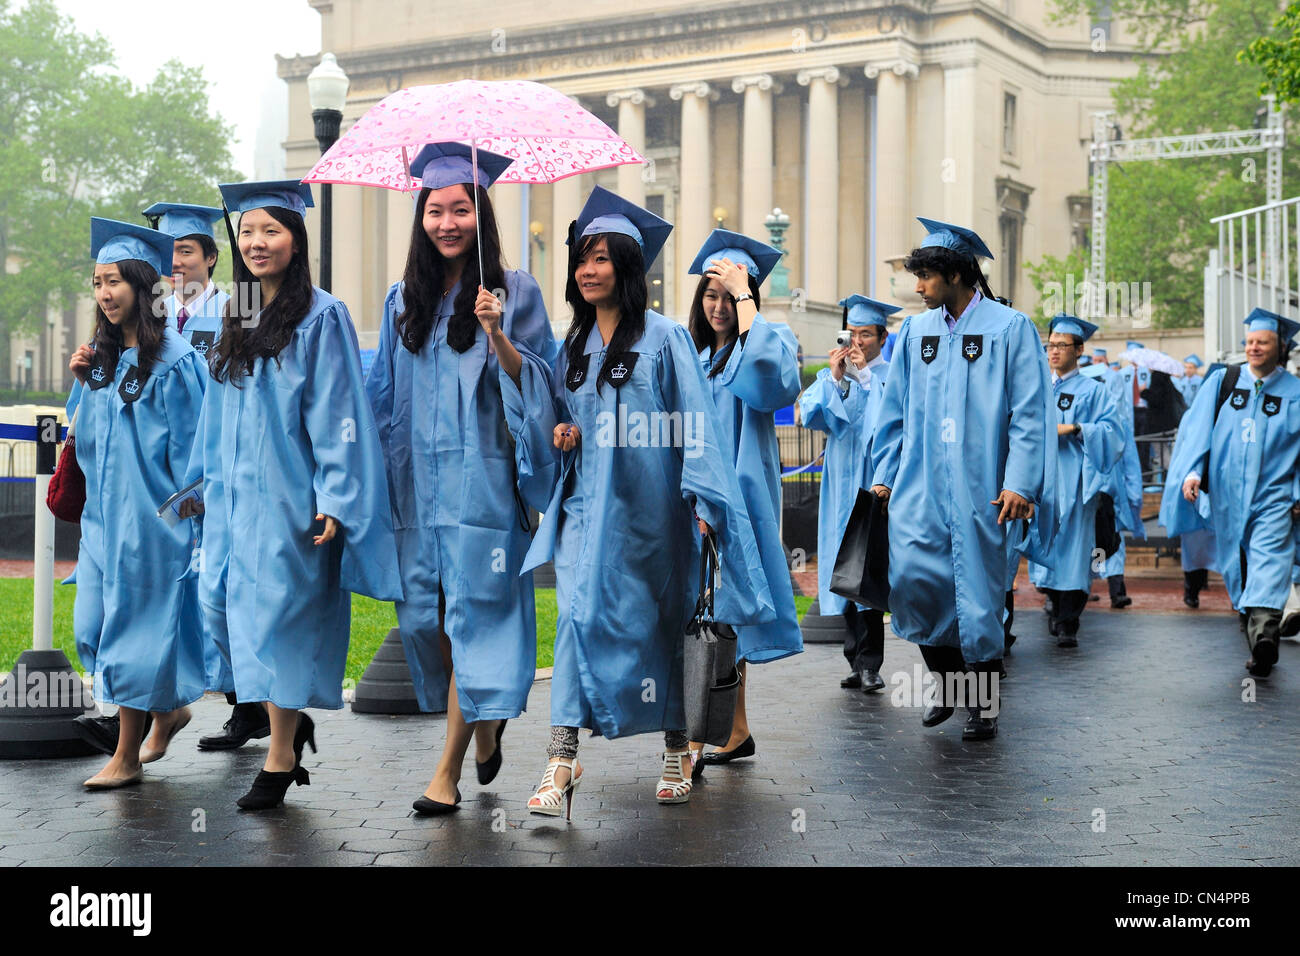 Funky Uncg Cap And Gown Image Collection - Wedding and flowers ...